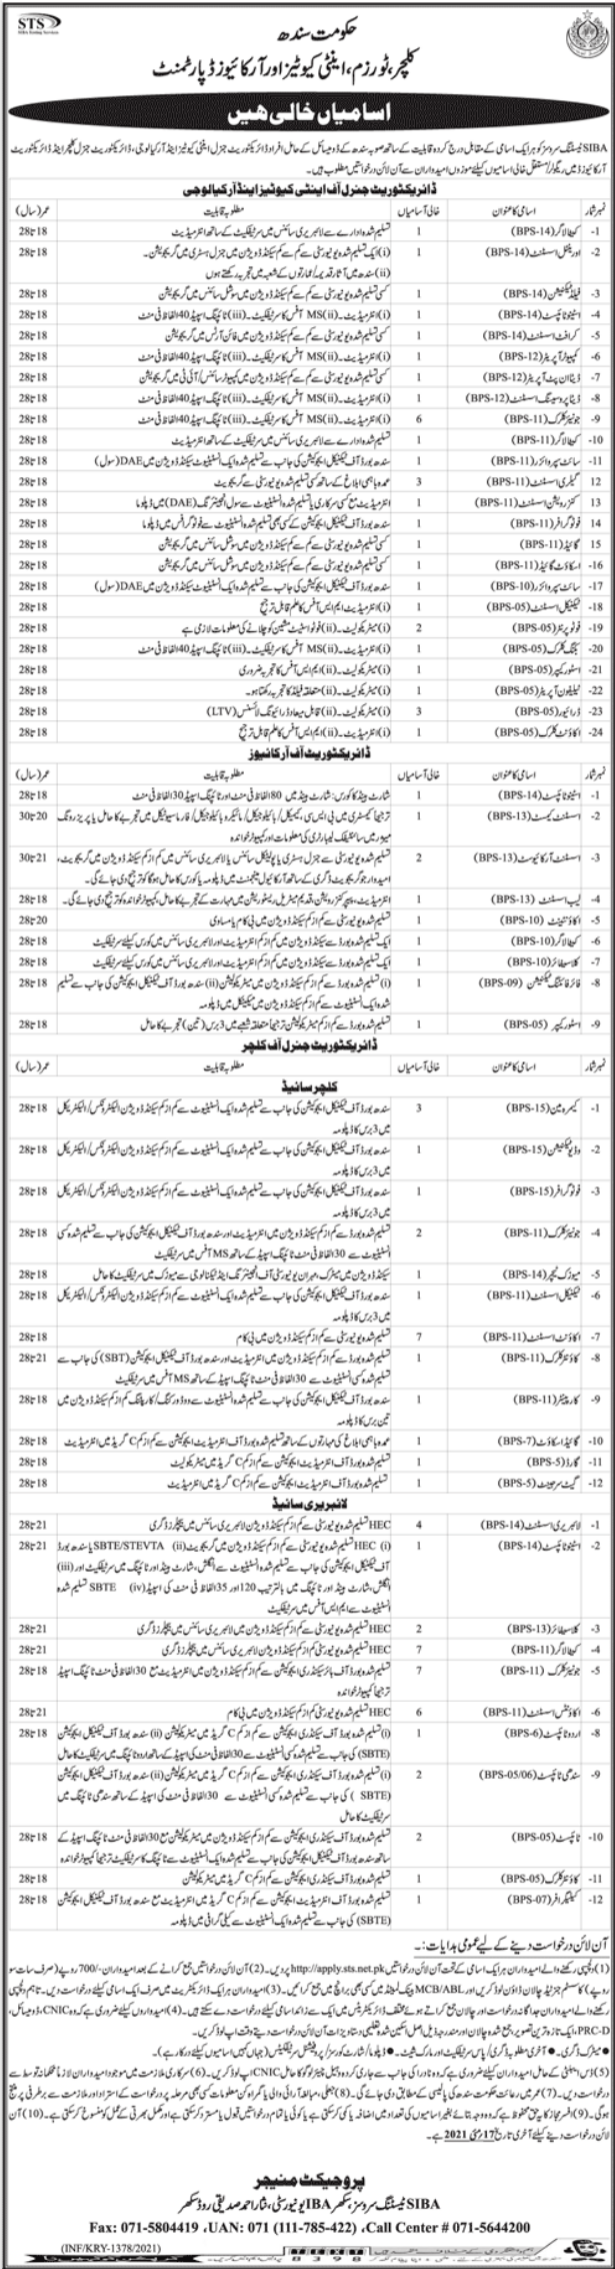 Jobs in Culture Tourism Antiquities & Archives Department in Karachi via STS 2021